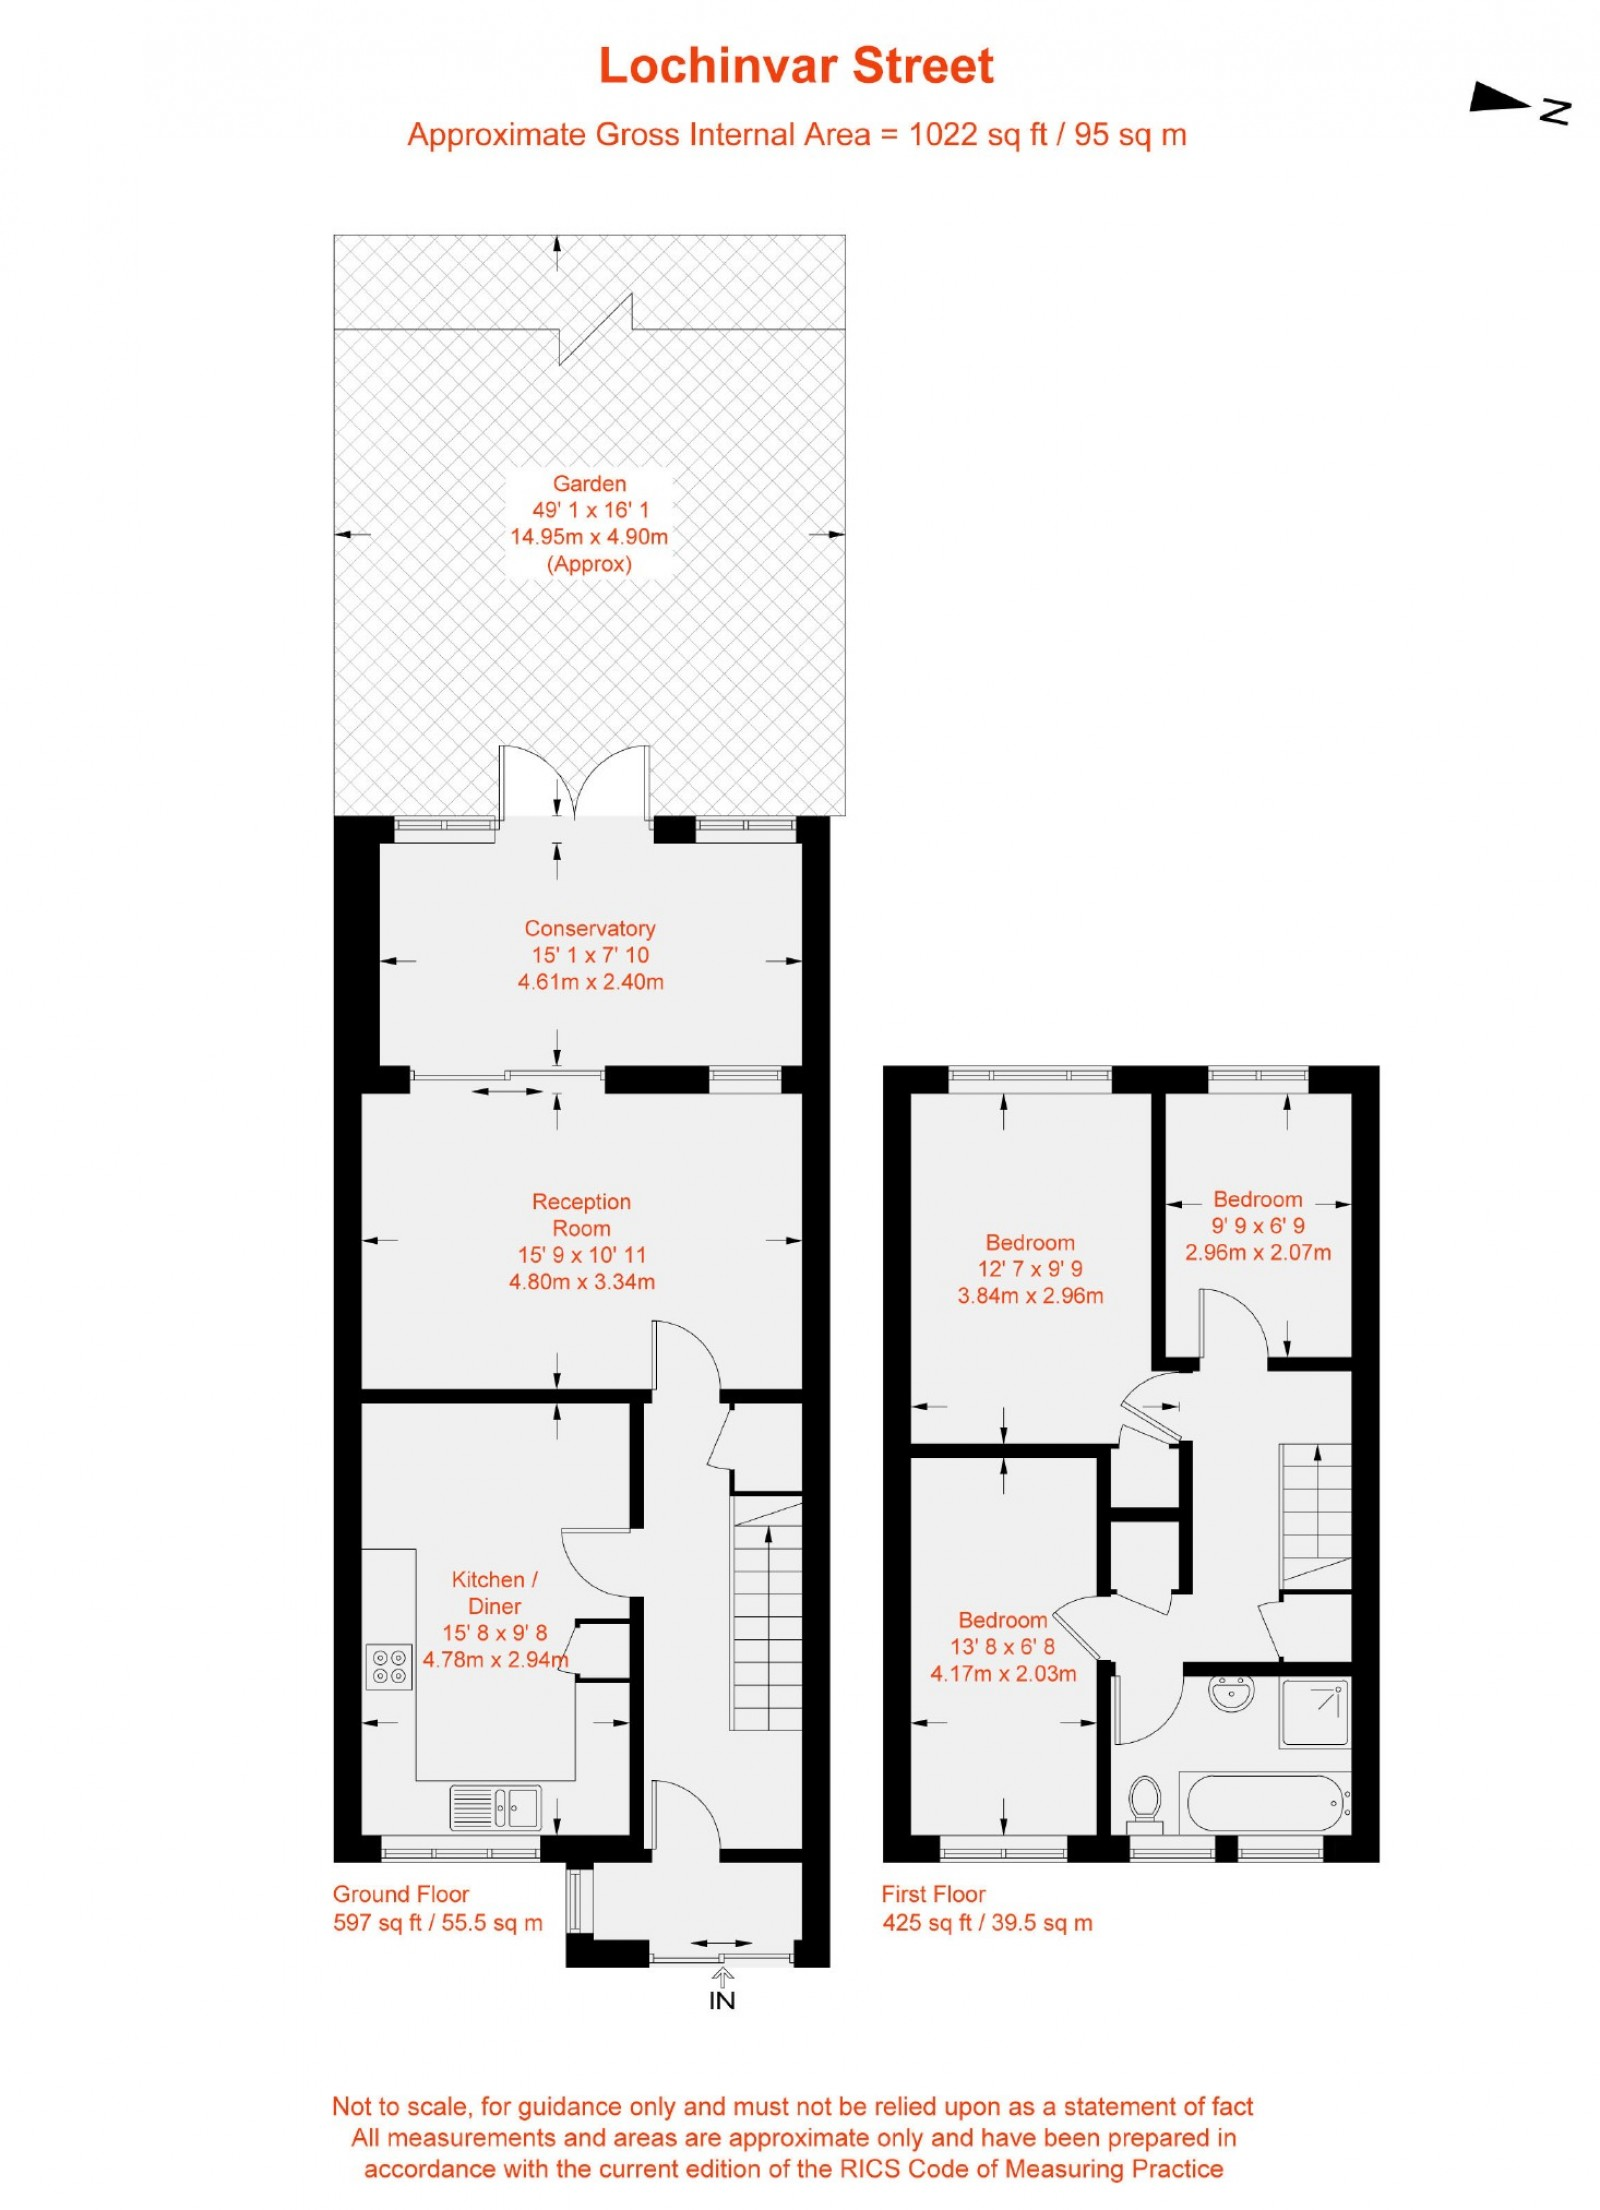 Floorplan for Lochinvar Street, Balham